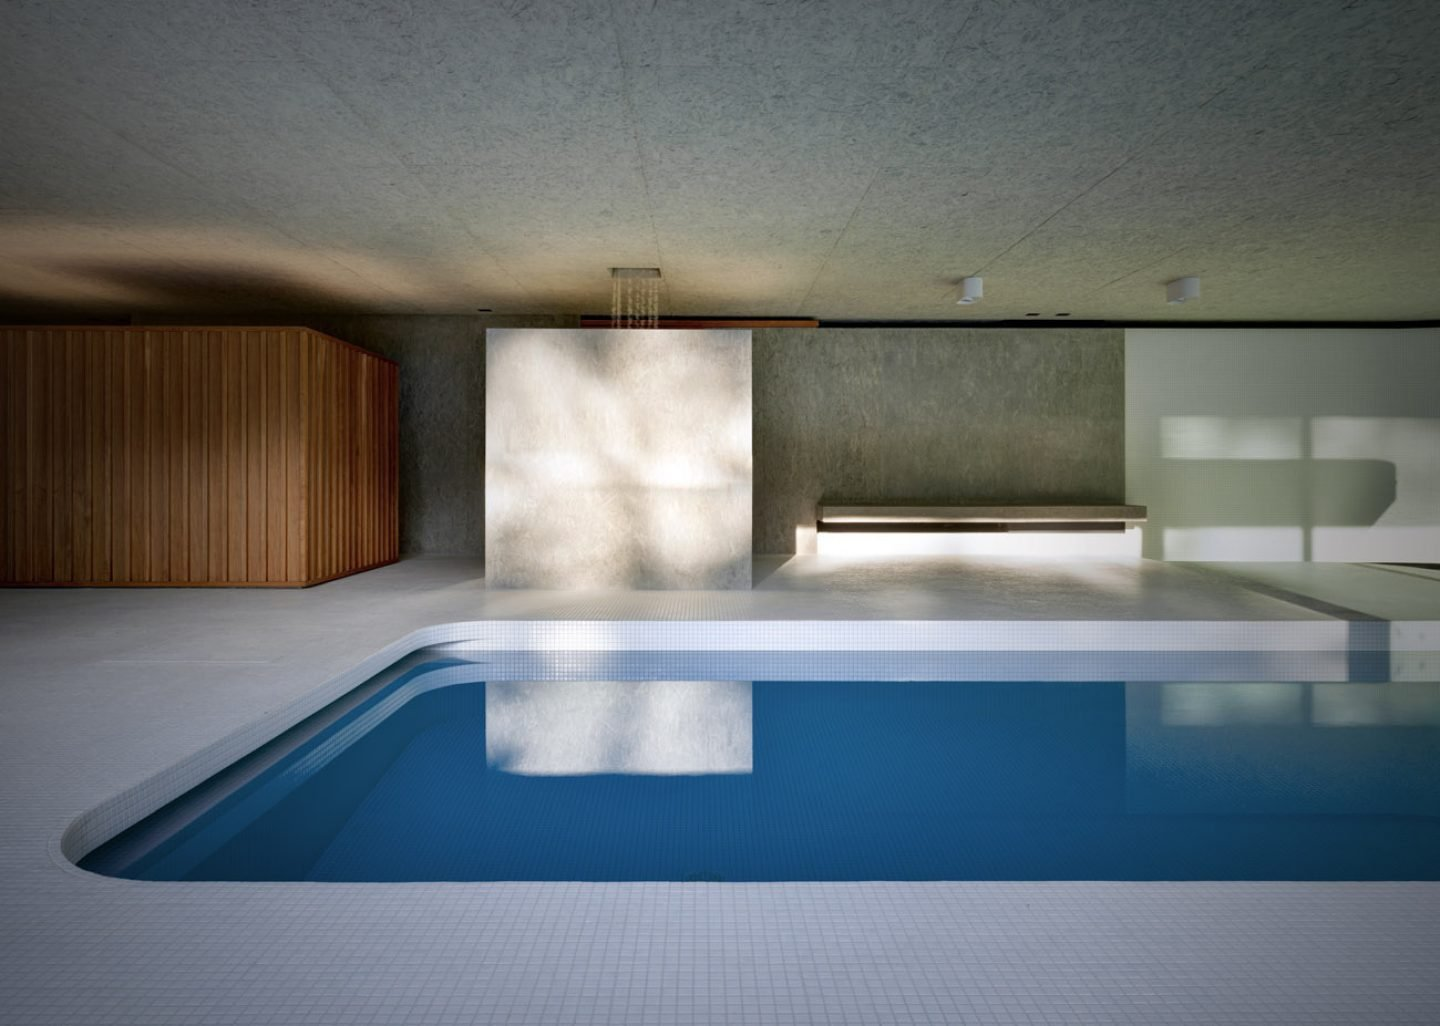 architecture_lapiscinadelroccolo_swimmingpool_pavillion_06